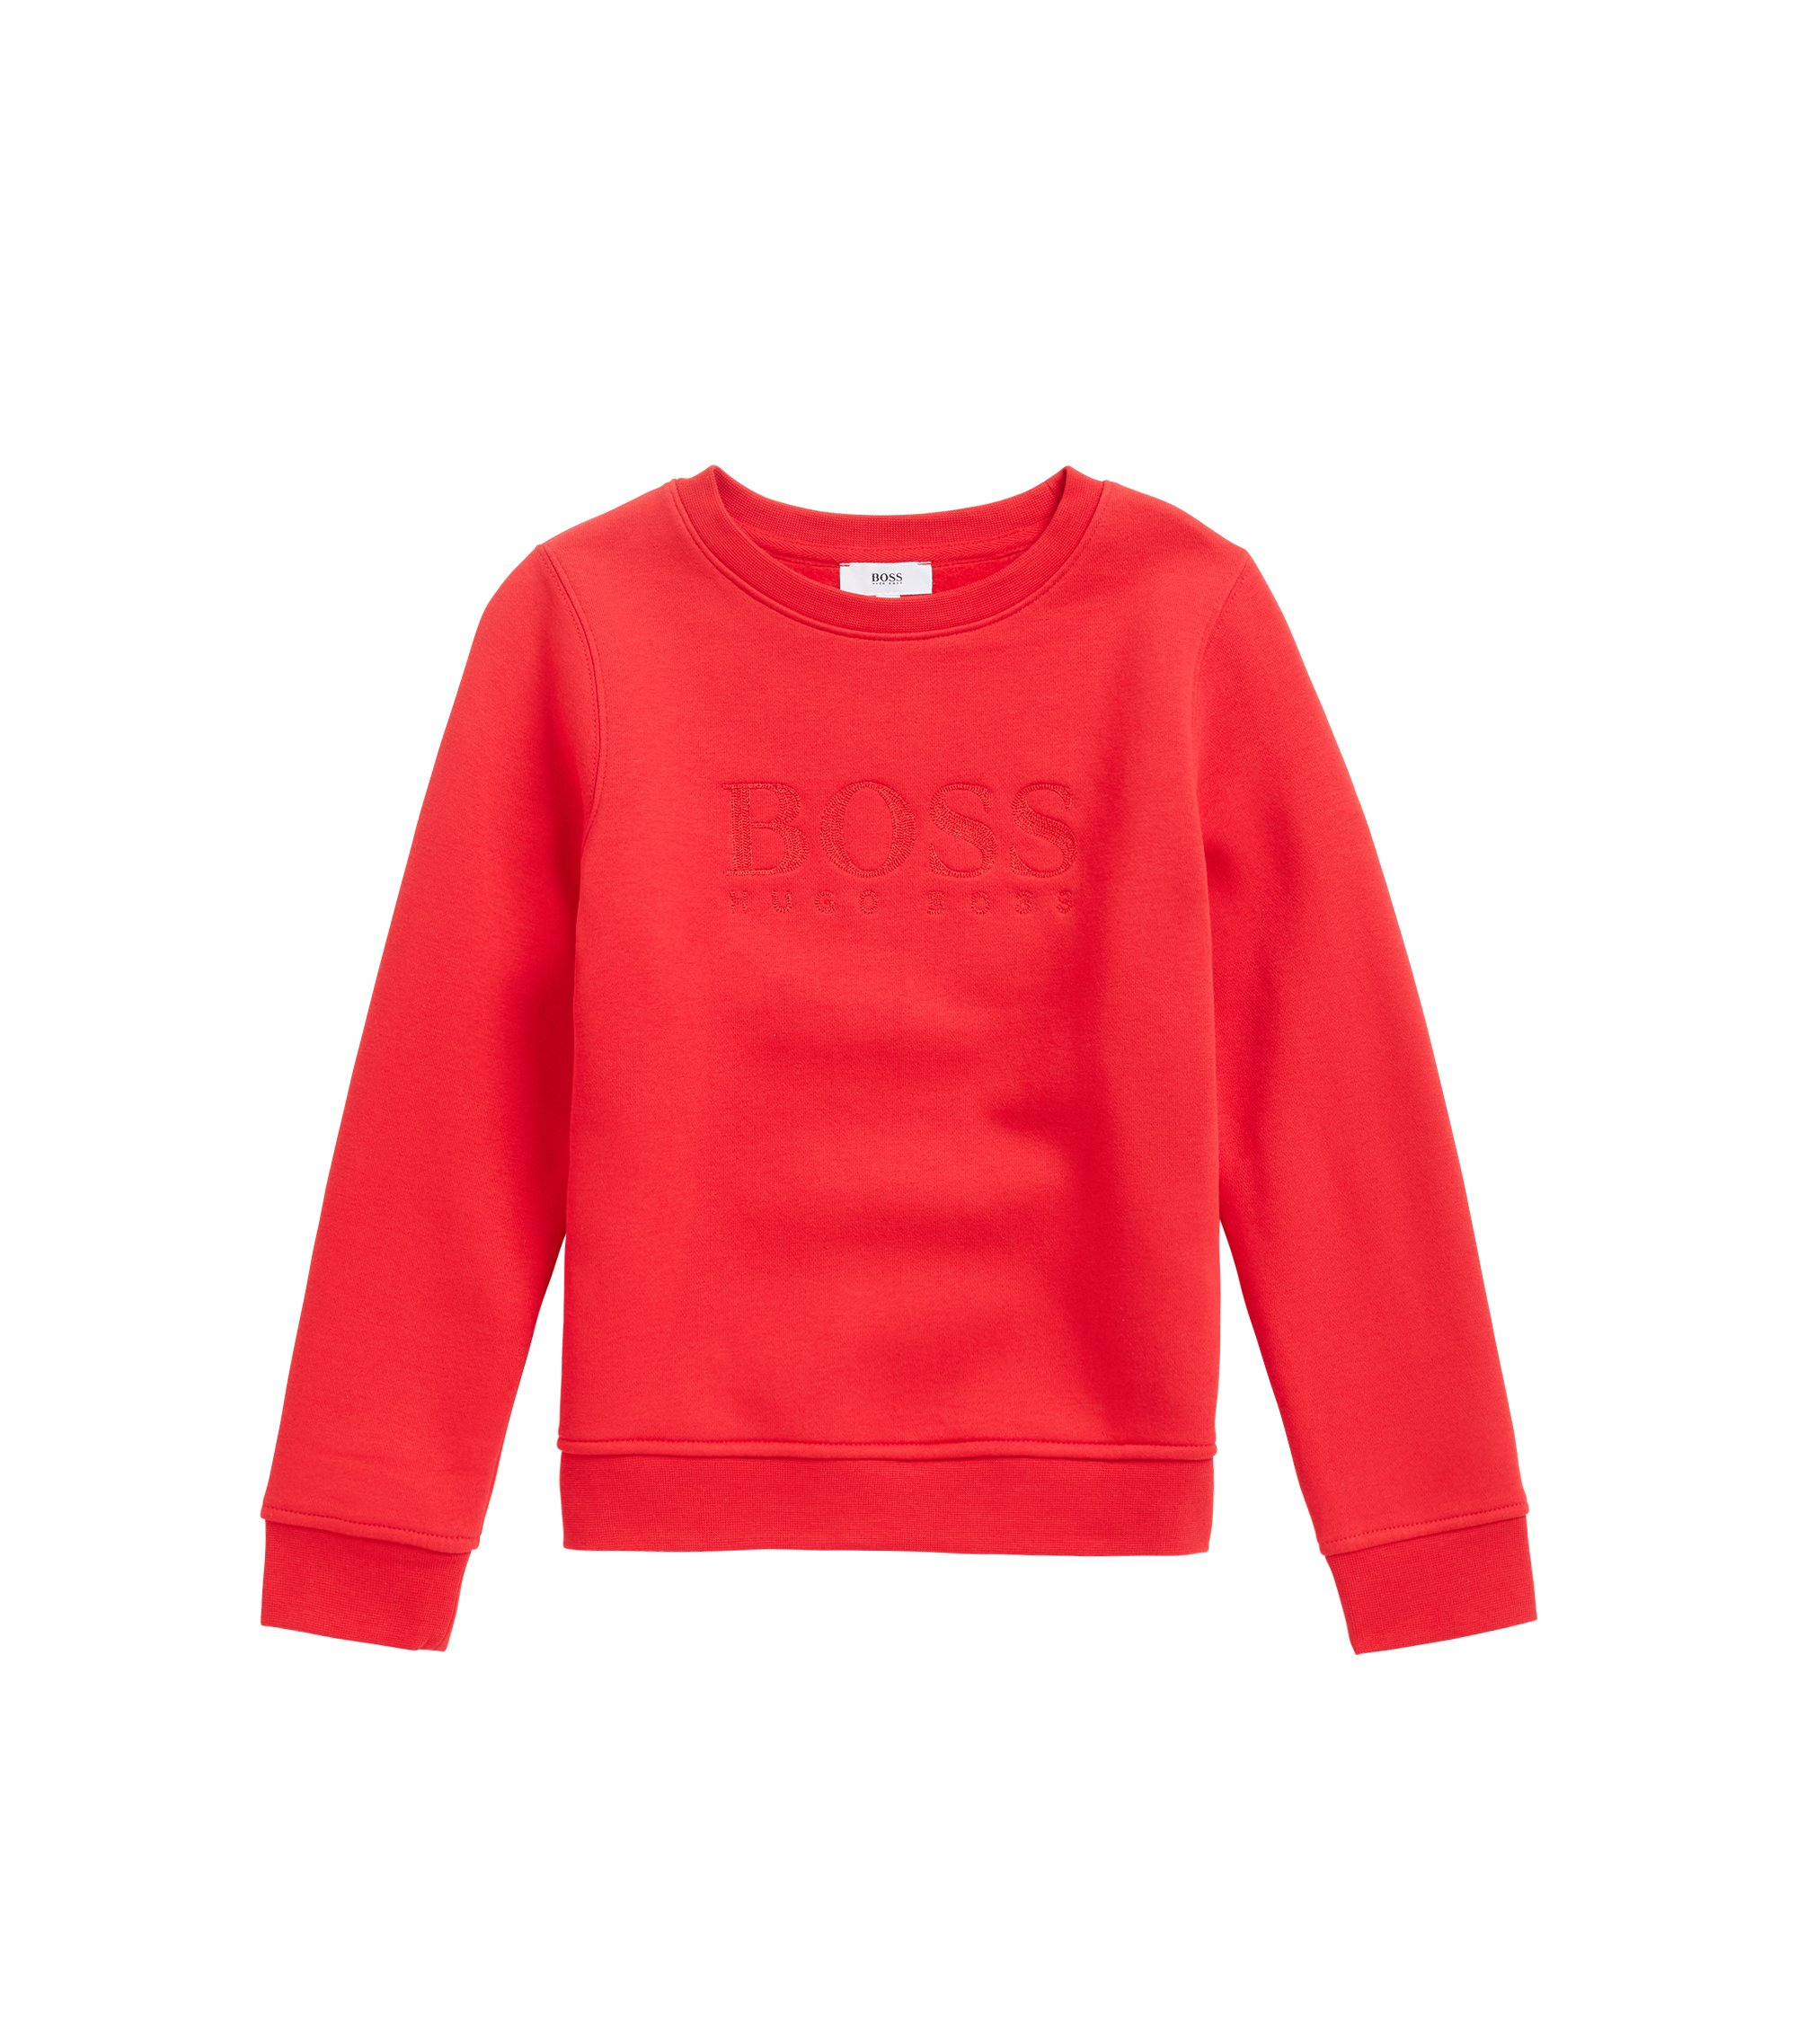 Kids' cotton-blend sweatshirt with logo embroidery, Red